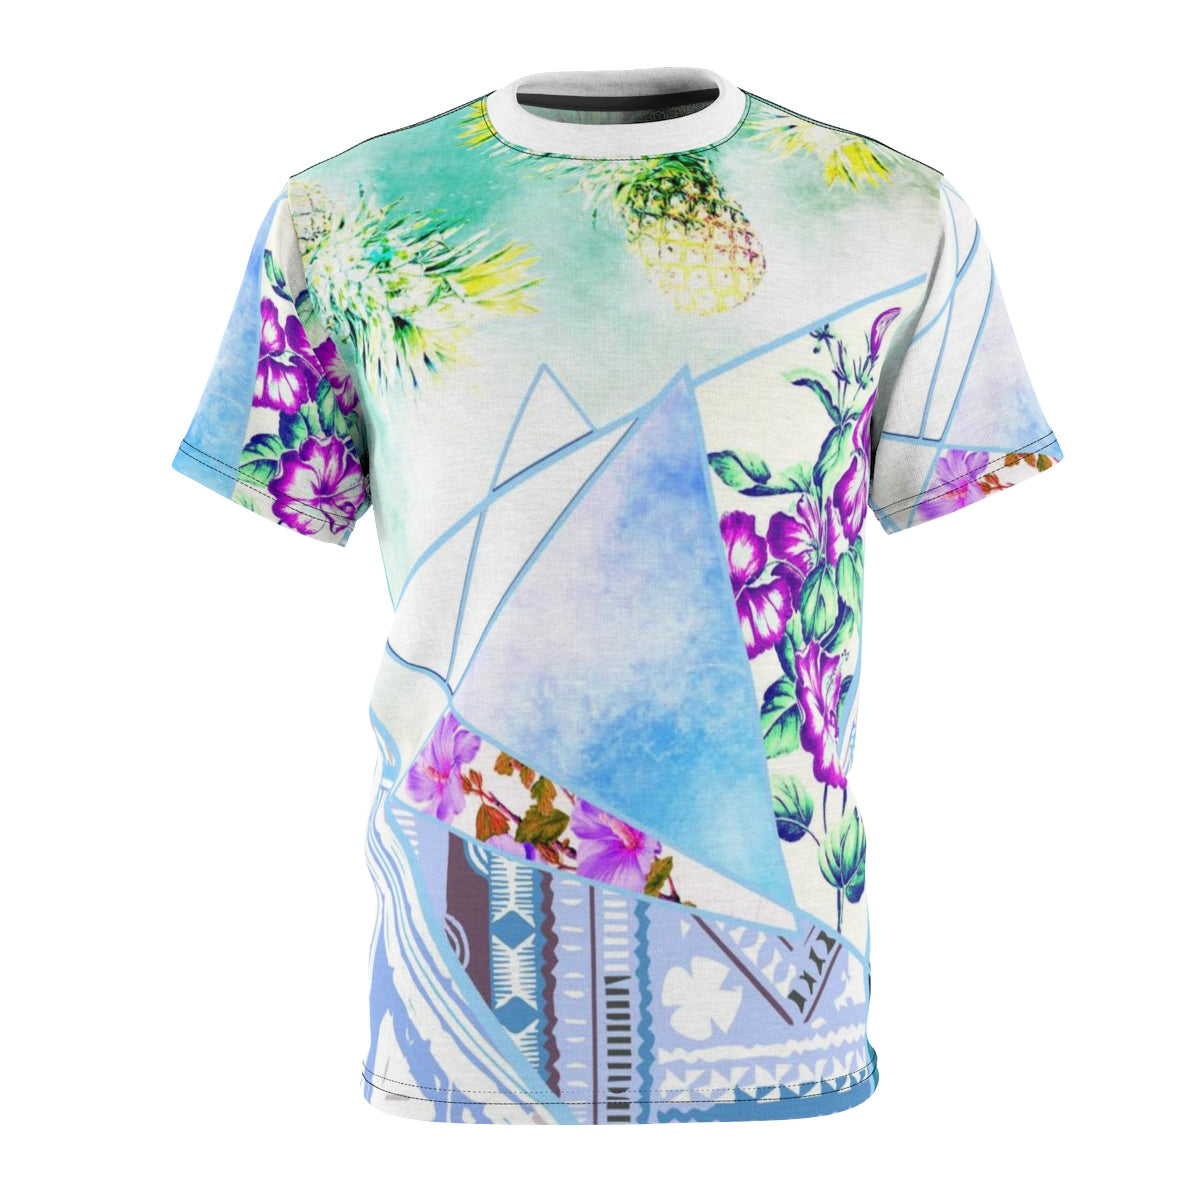 Fiji Islands #0023 (T-shirt)